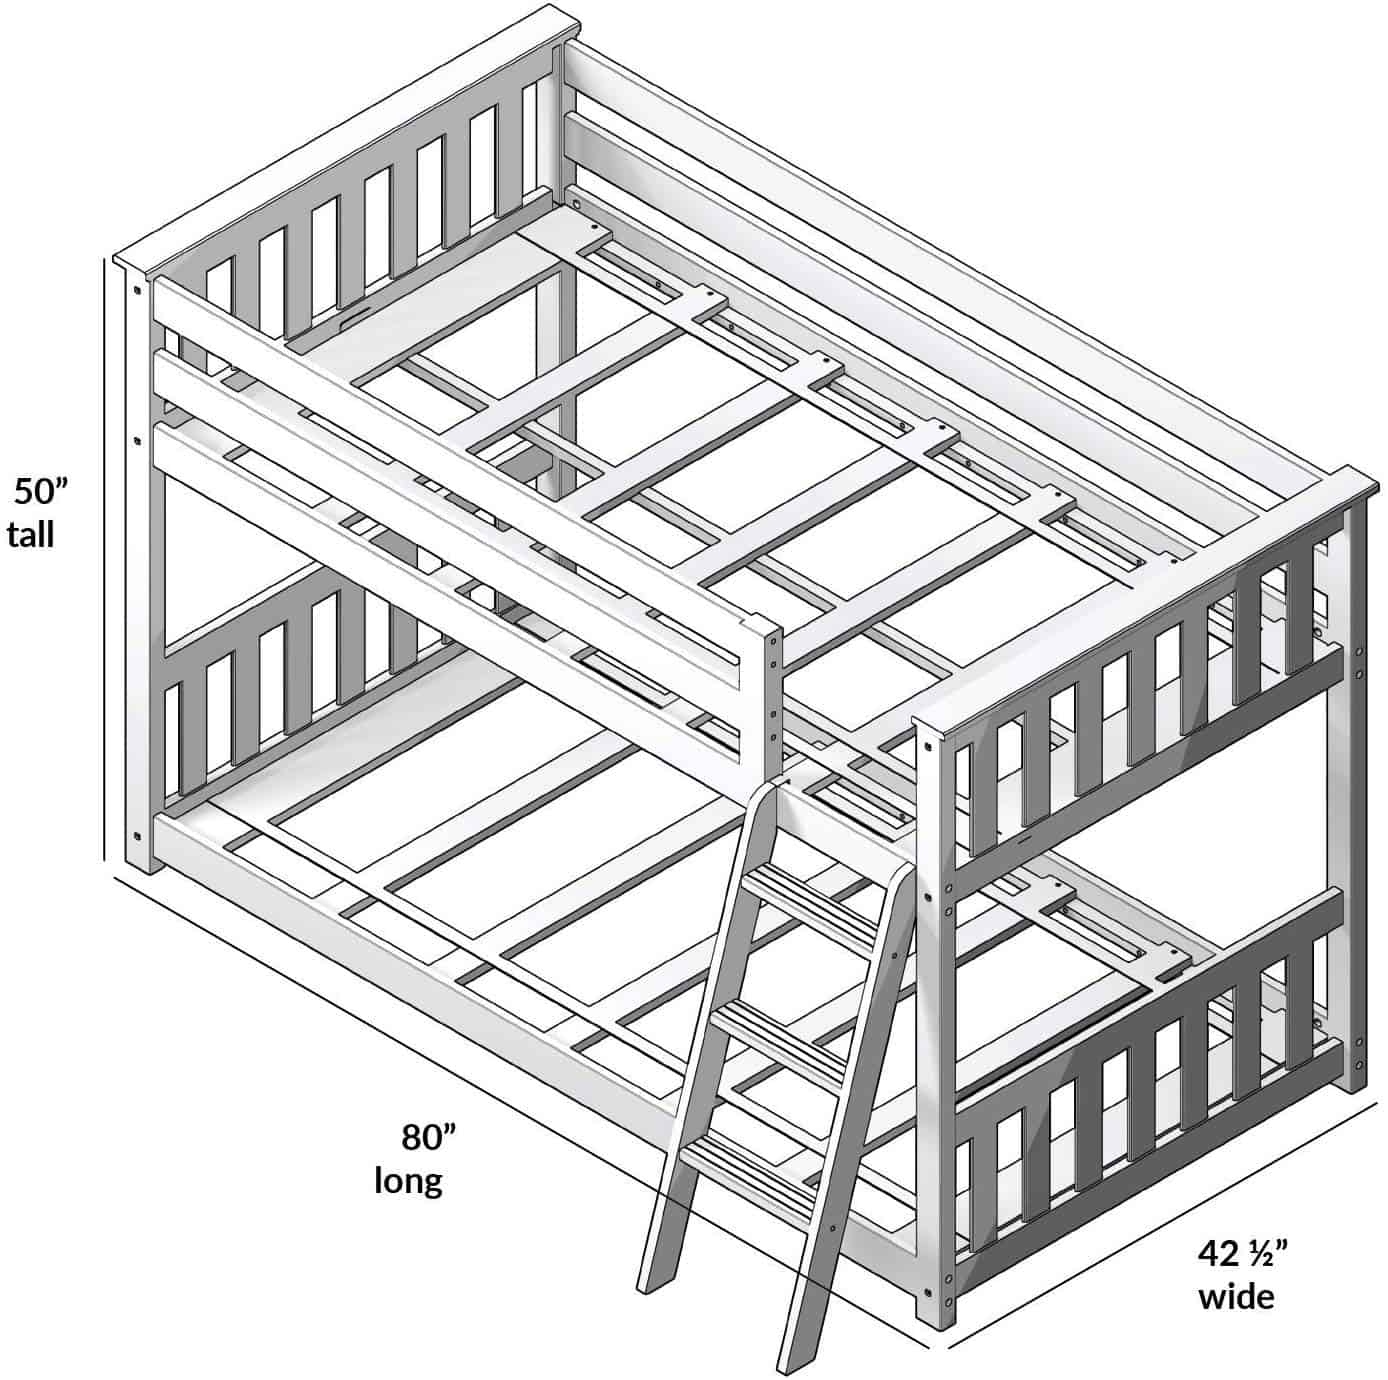 Picture of: What S The Size Of A Bunk Bed Guide To Sizes Of Different Types Of Bunk Beds Shorty Bunk Bed Height 7 Pgs Q A